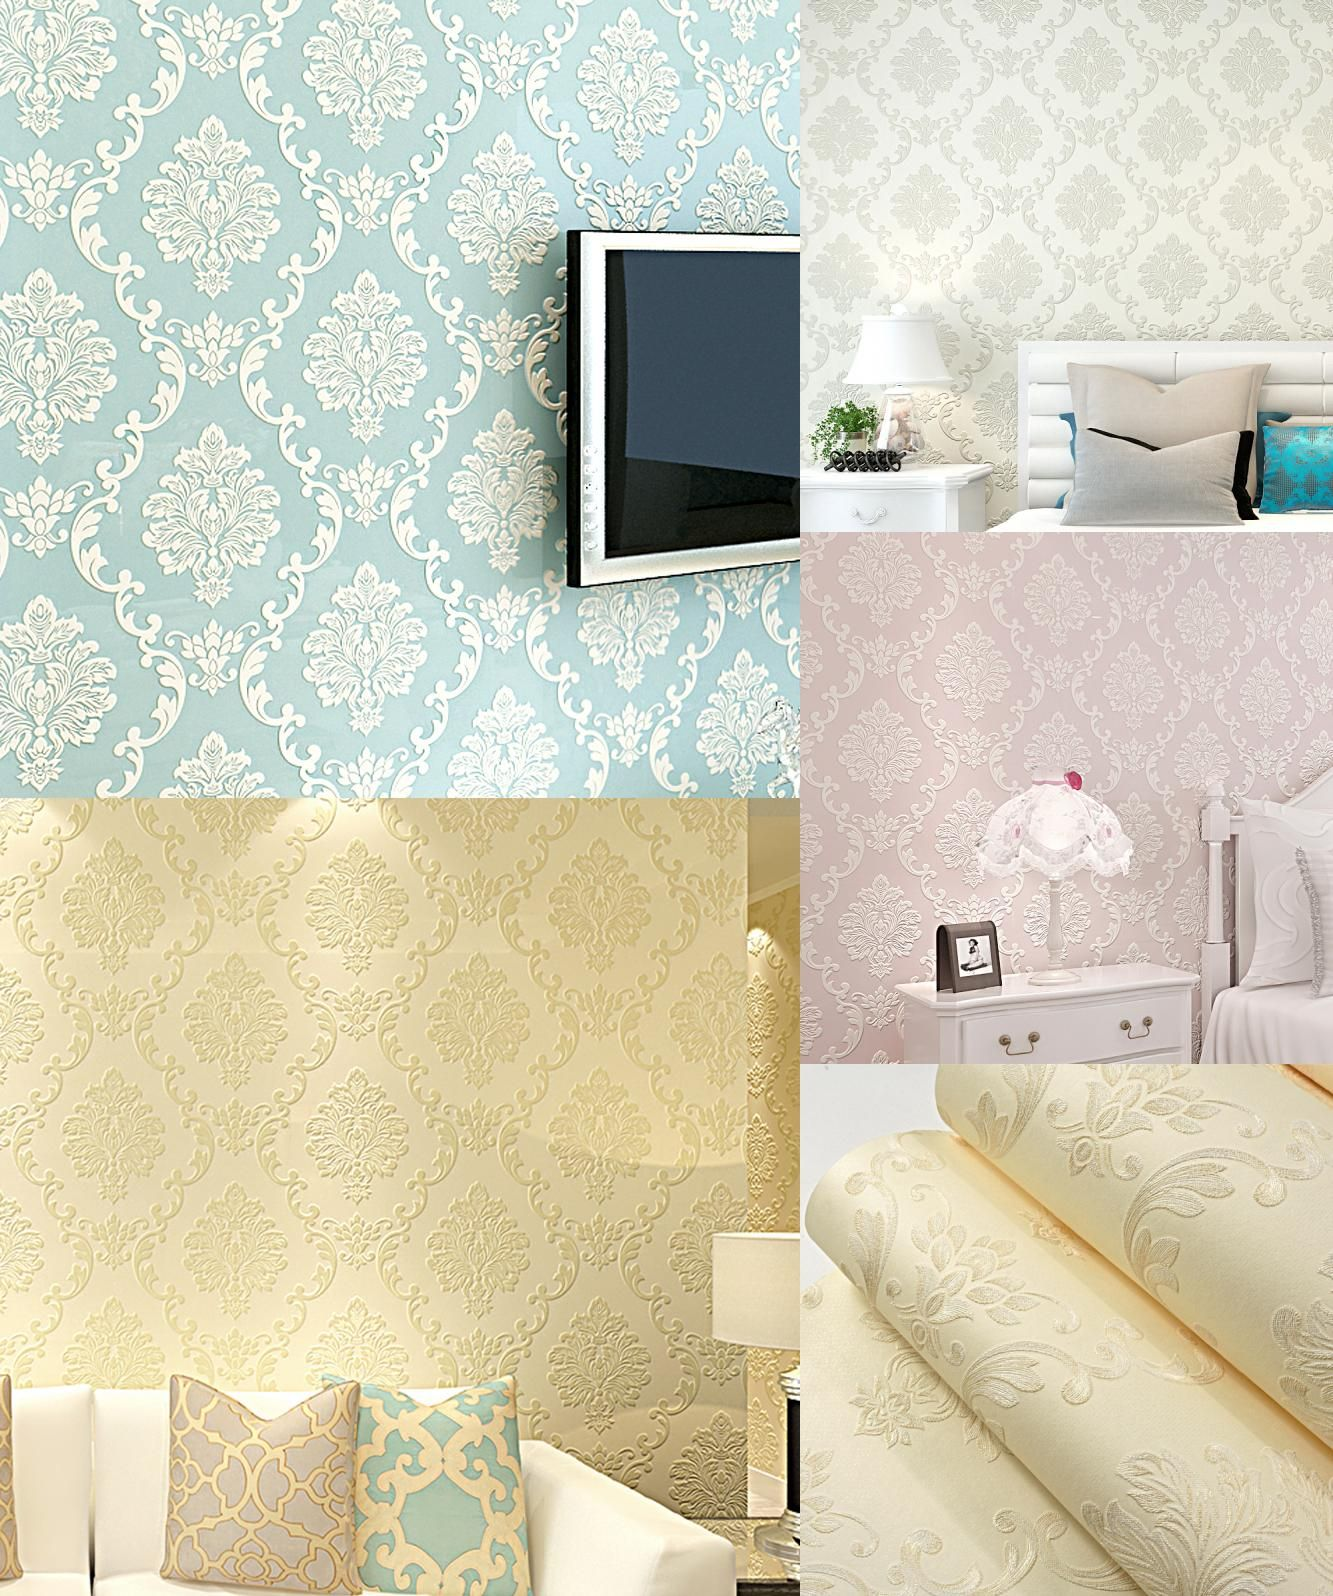 Visit to Buy] European Style 3D Embossed Floral Luxury Damask ...